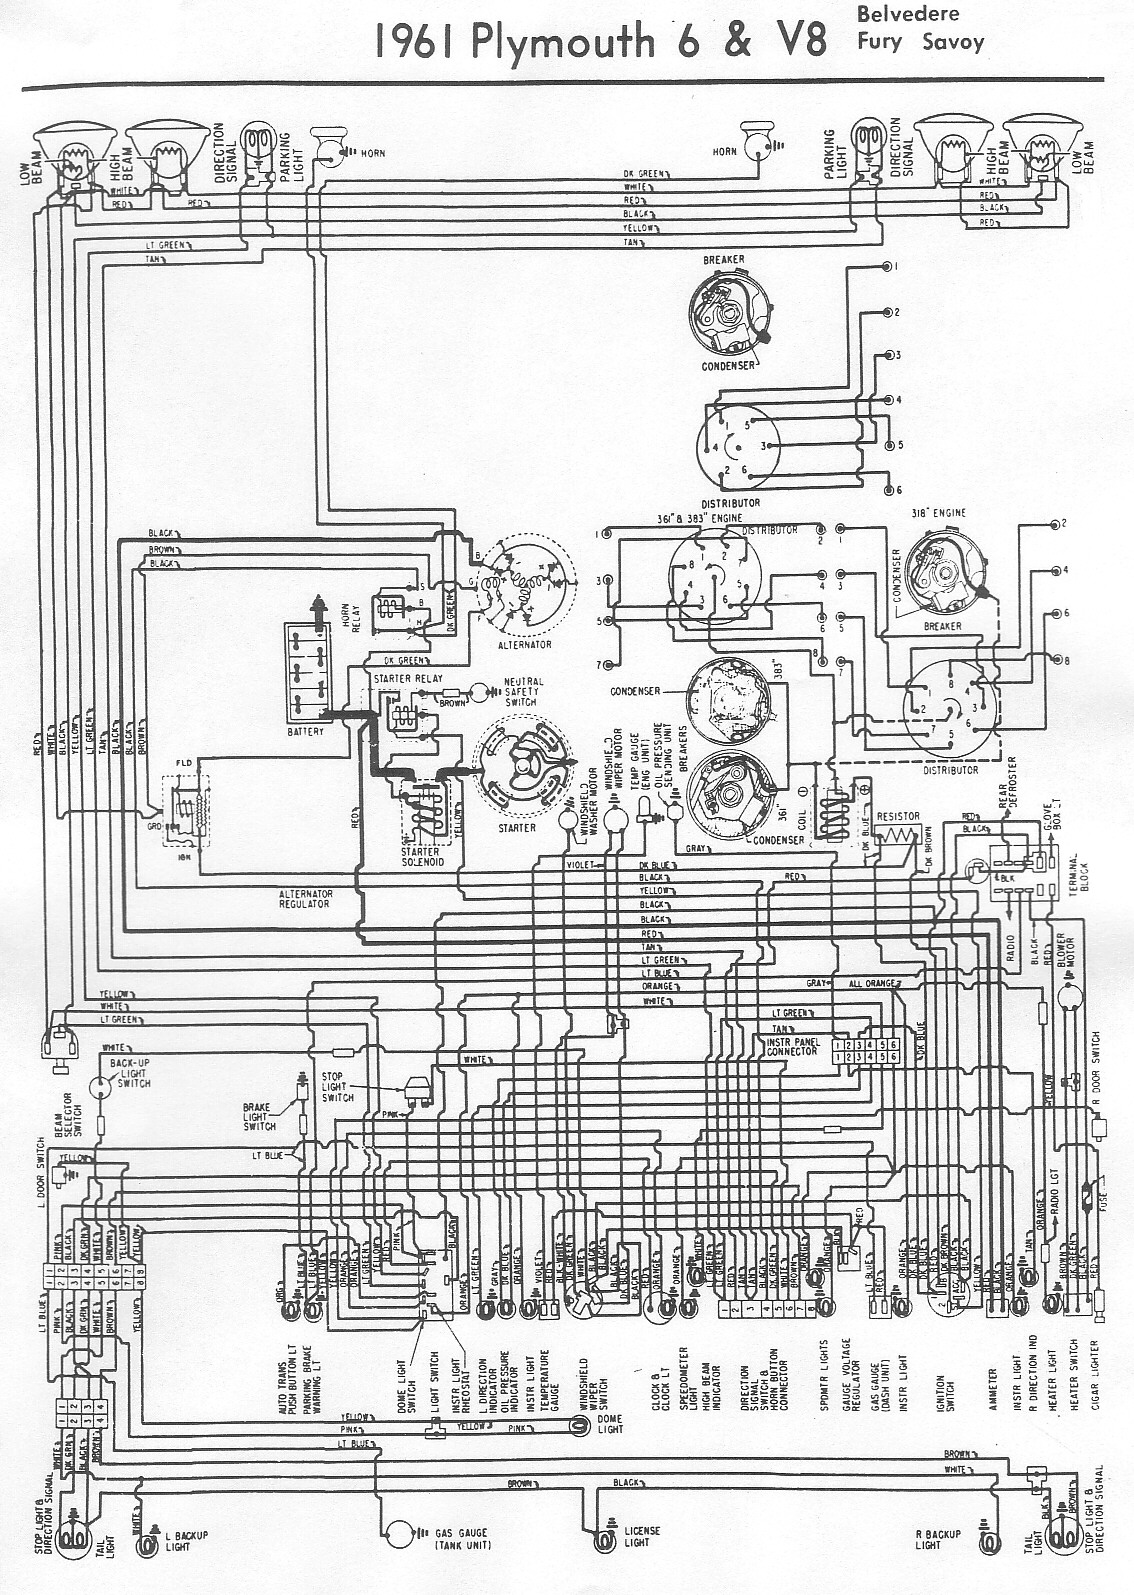 hight resolution of 1969 plymouth fury wiring diagram electrical work wiring diagram u2022 1939 plymouth positive ground wiring